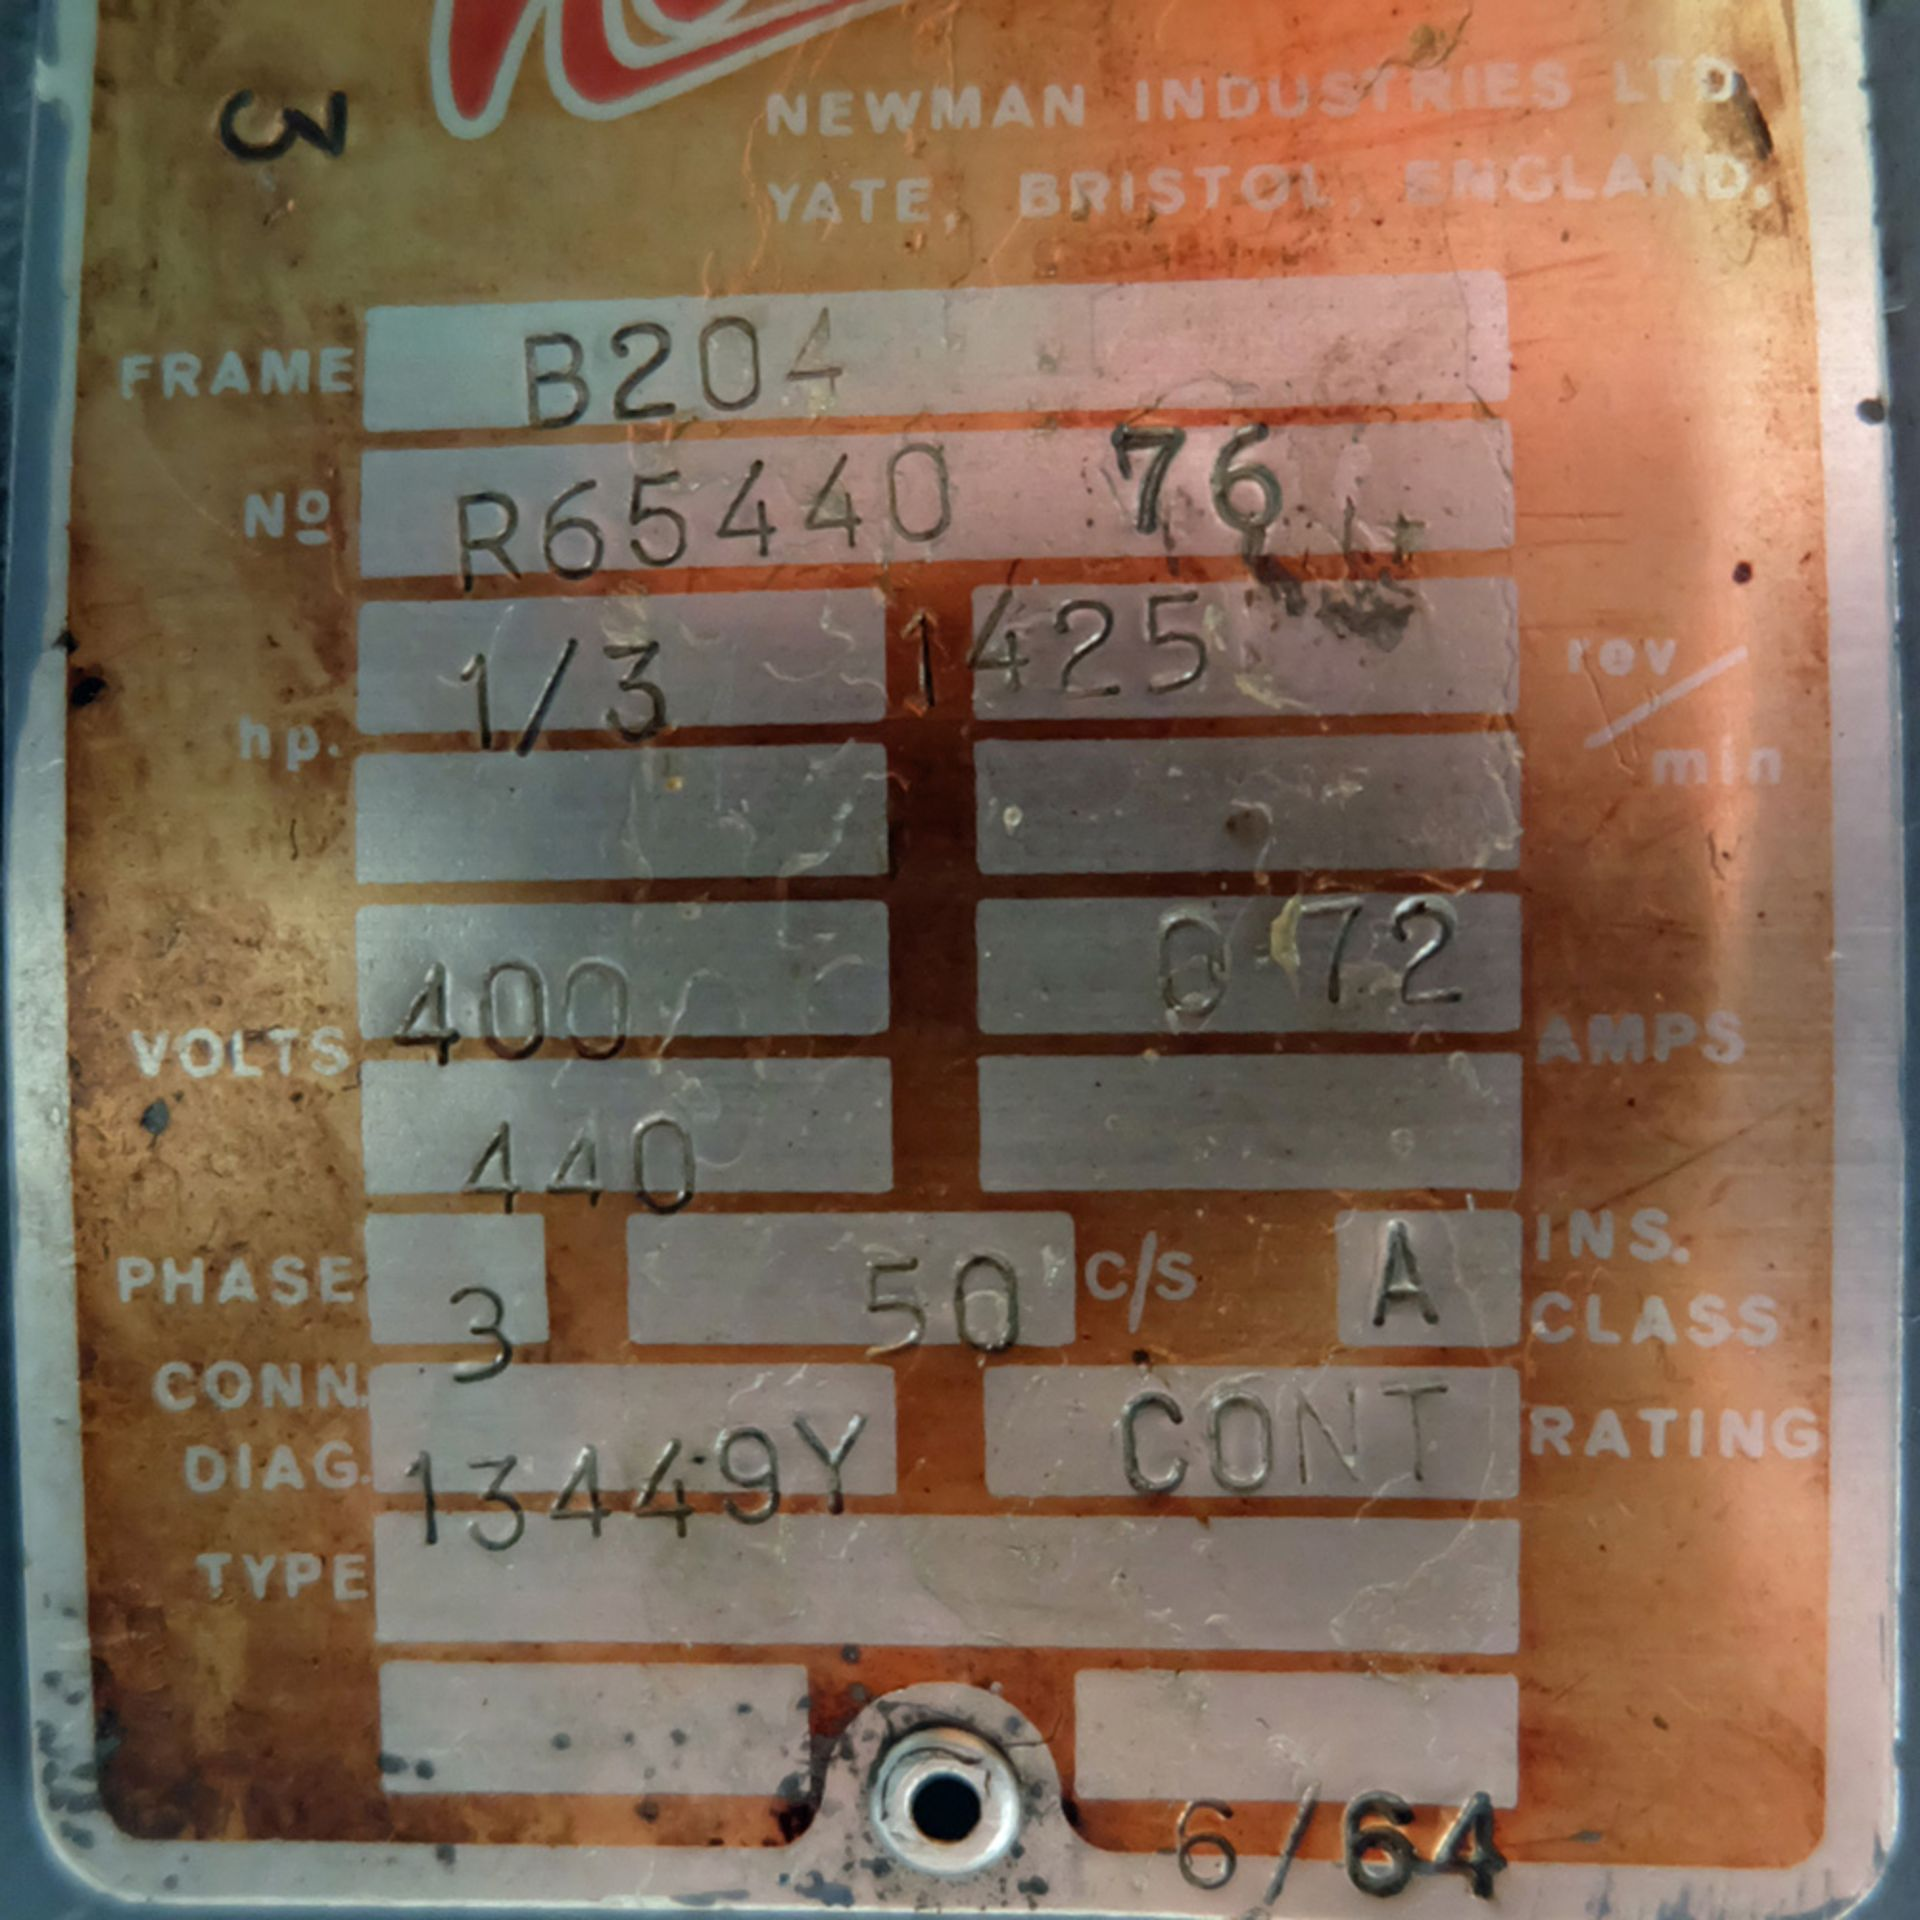 """Meddings Drilltru DTF Bench Drill. Capacity 1/2"""". Table Size 9"""" x 11"""". - Image 7 of 7"""